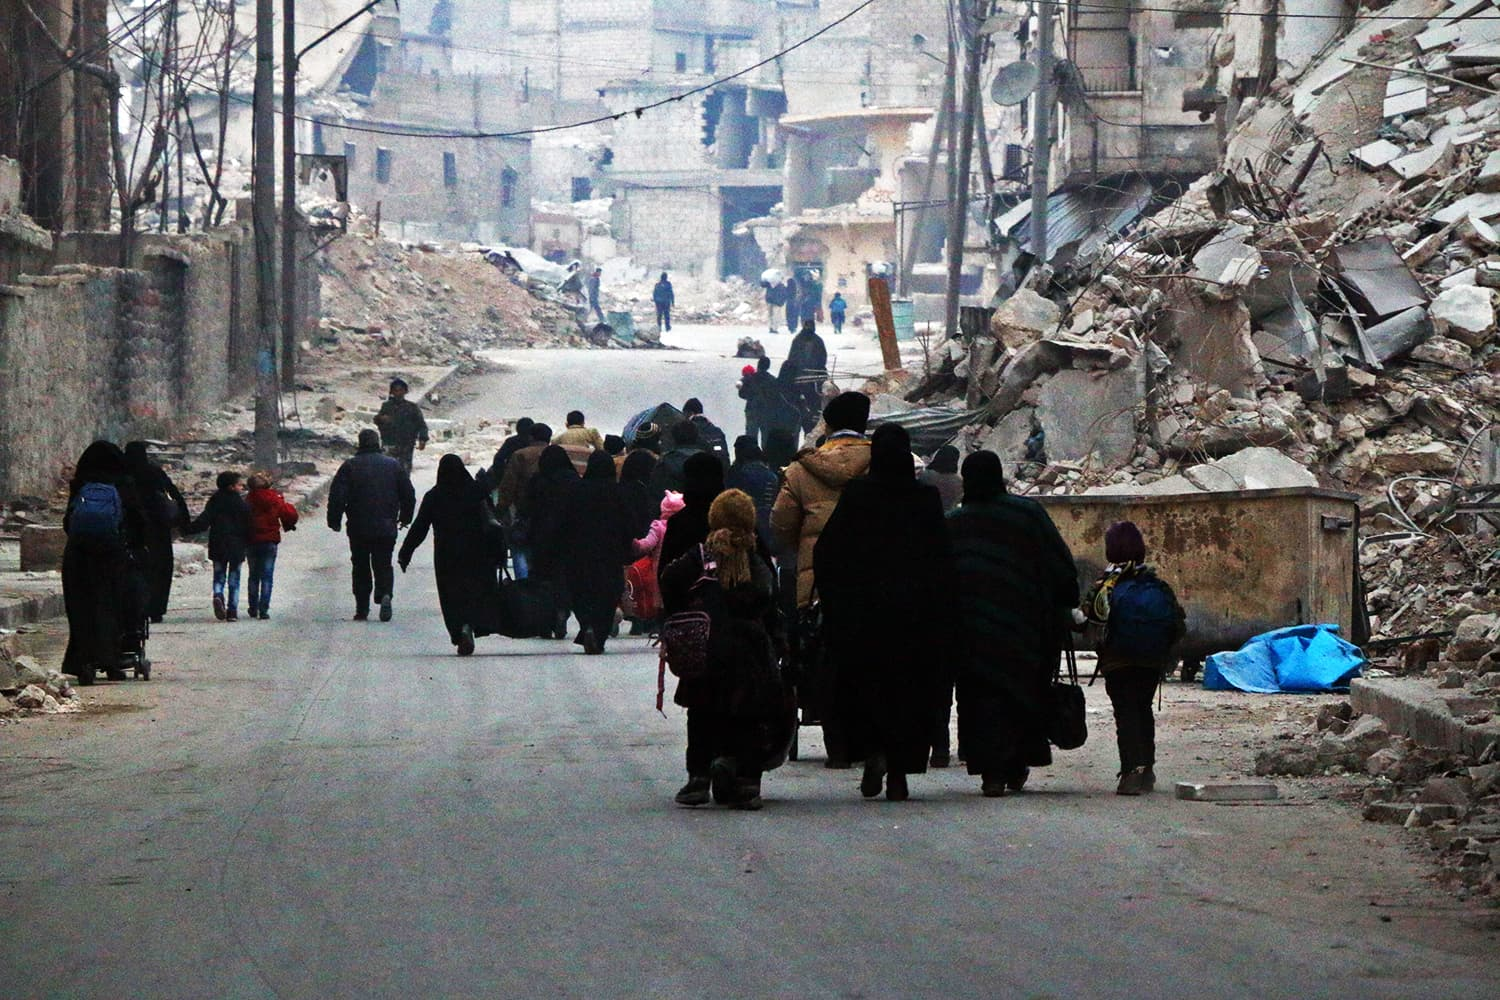 Syrian civilians flee the Sukkari neighbourhood towards safer rebel-held areas in southeastern Aleppo, on December 12, 2016, during an operation by Syrian government forces to retake the embattled city. ─ AFP